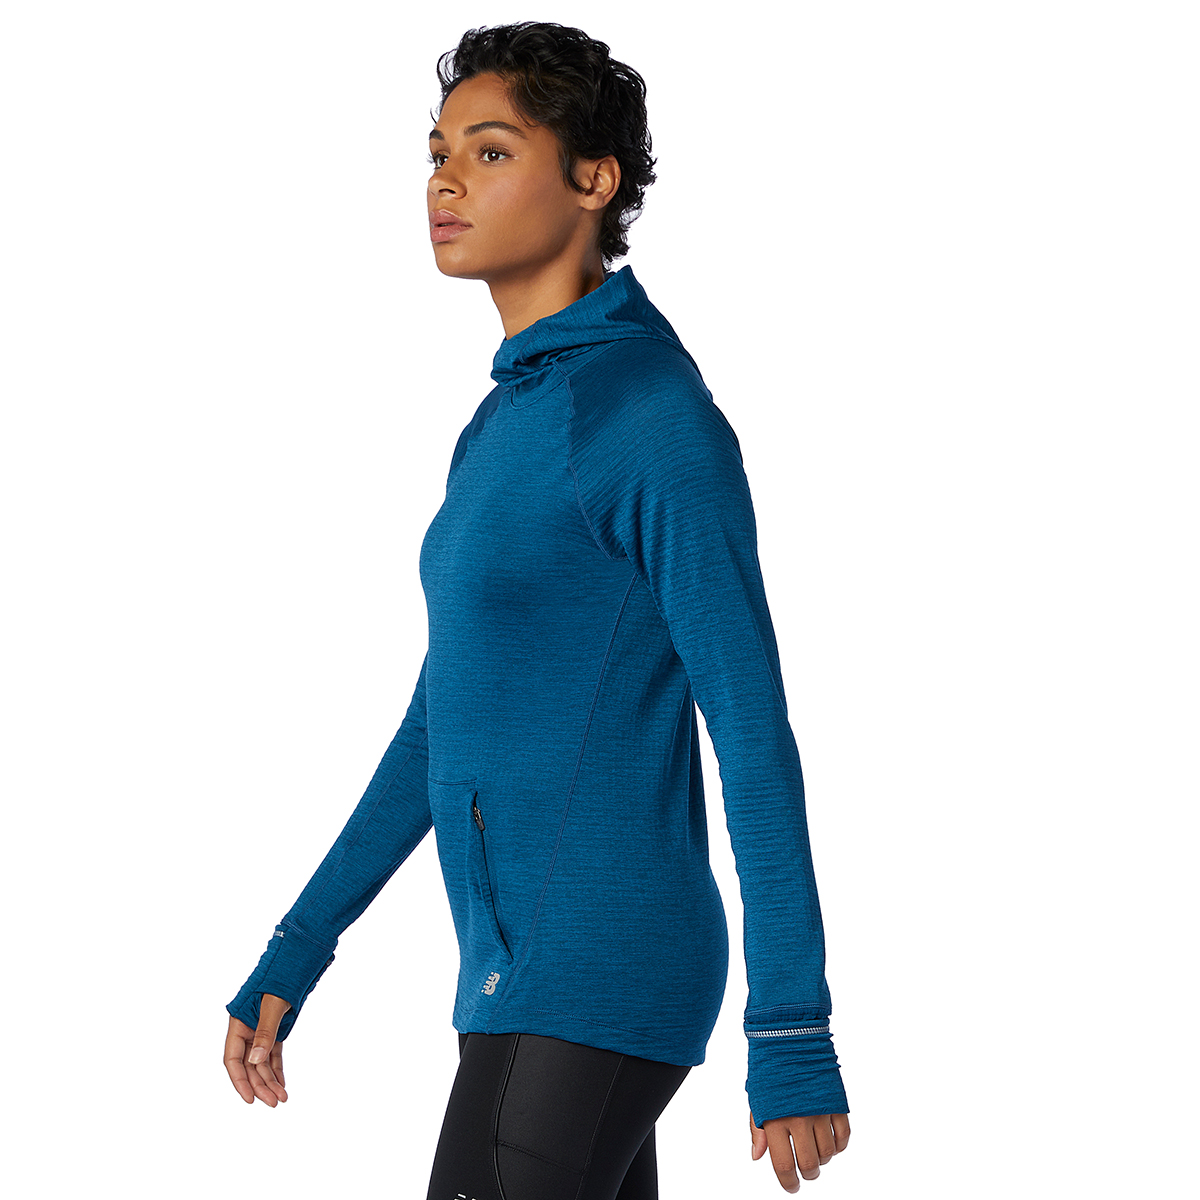 Women's New Balance Heat Grid Hoodie - Color: Rogue Wave - Size: XS, Rogue Wave, large, image 4